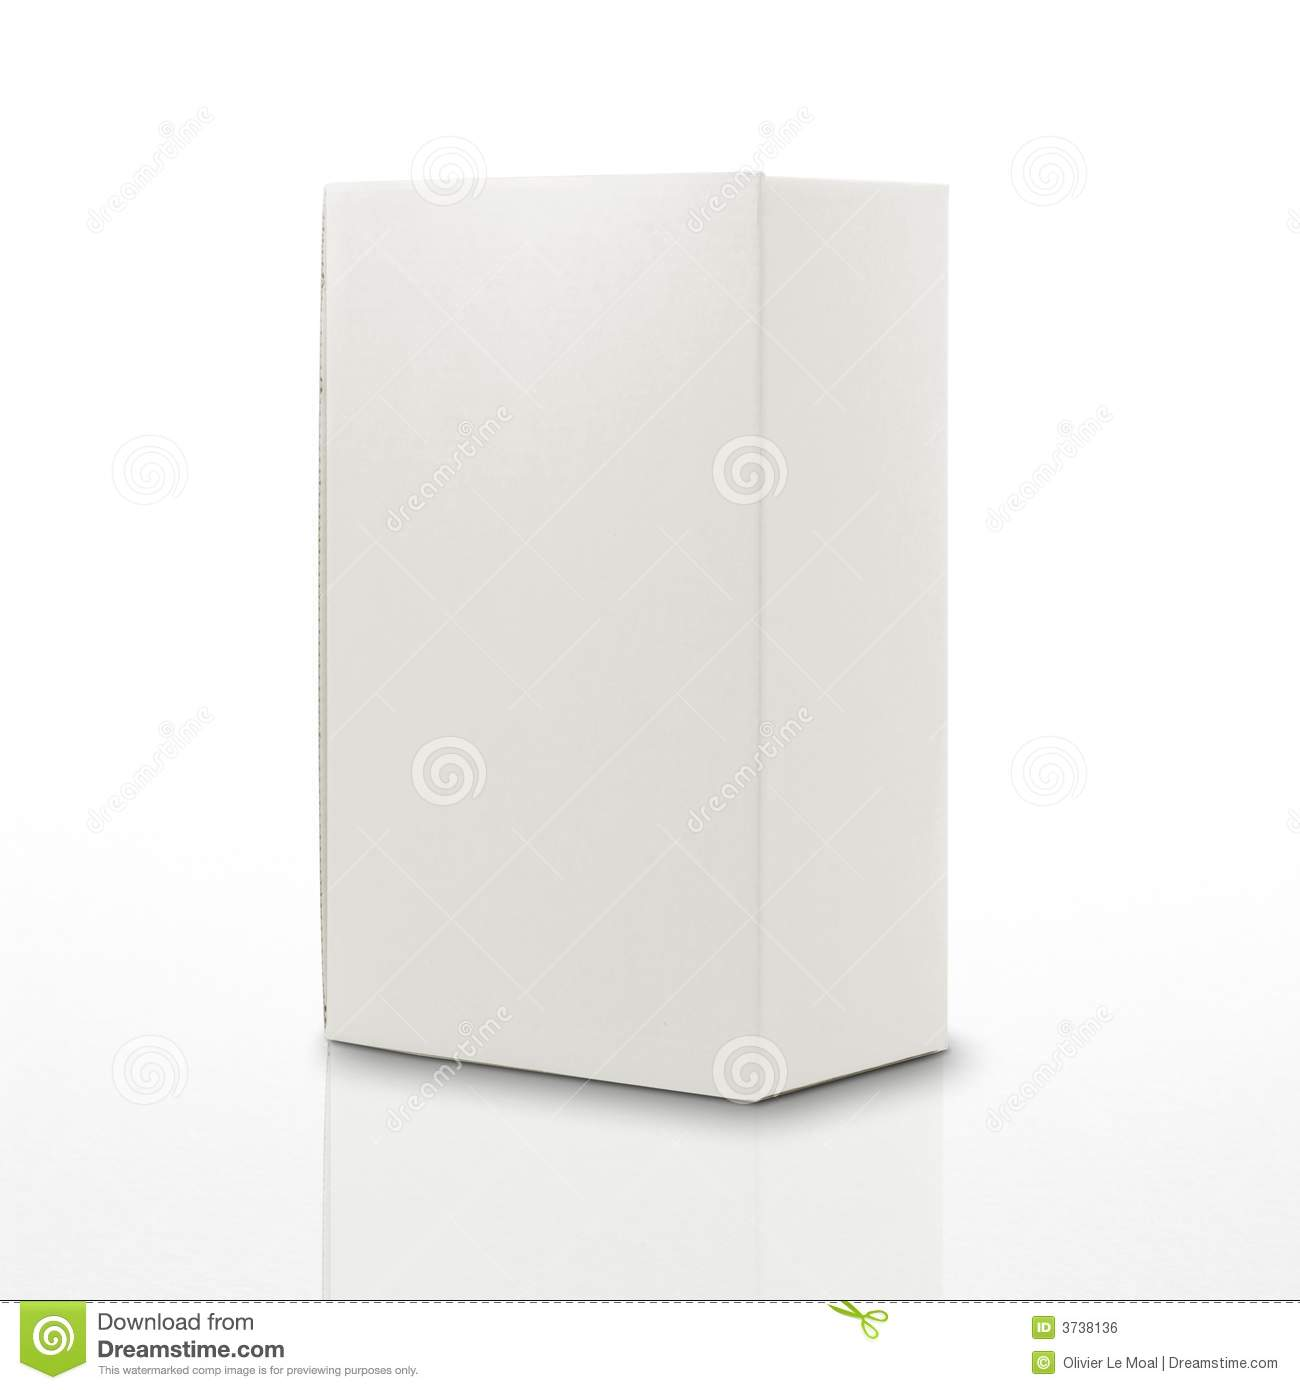 White carton box isolated on white with reflection